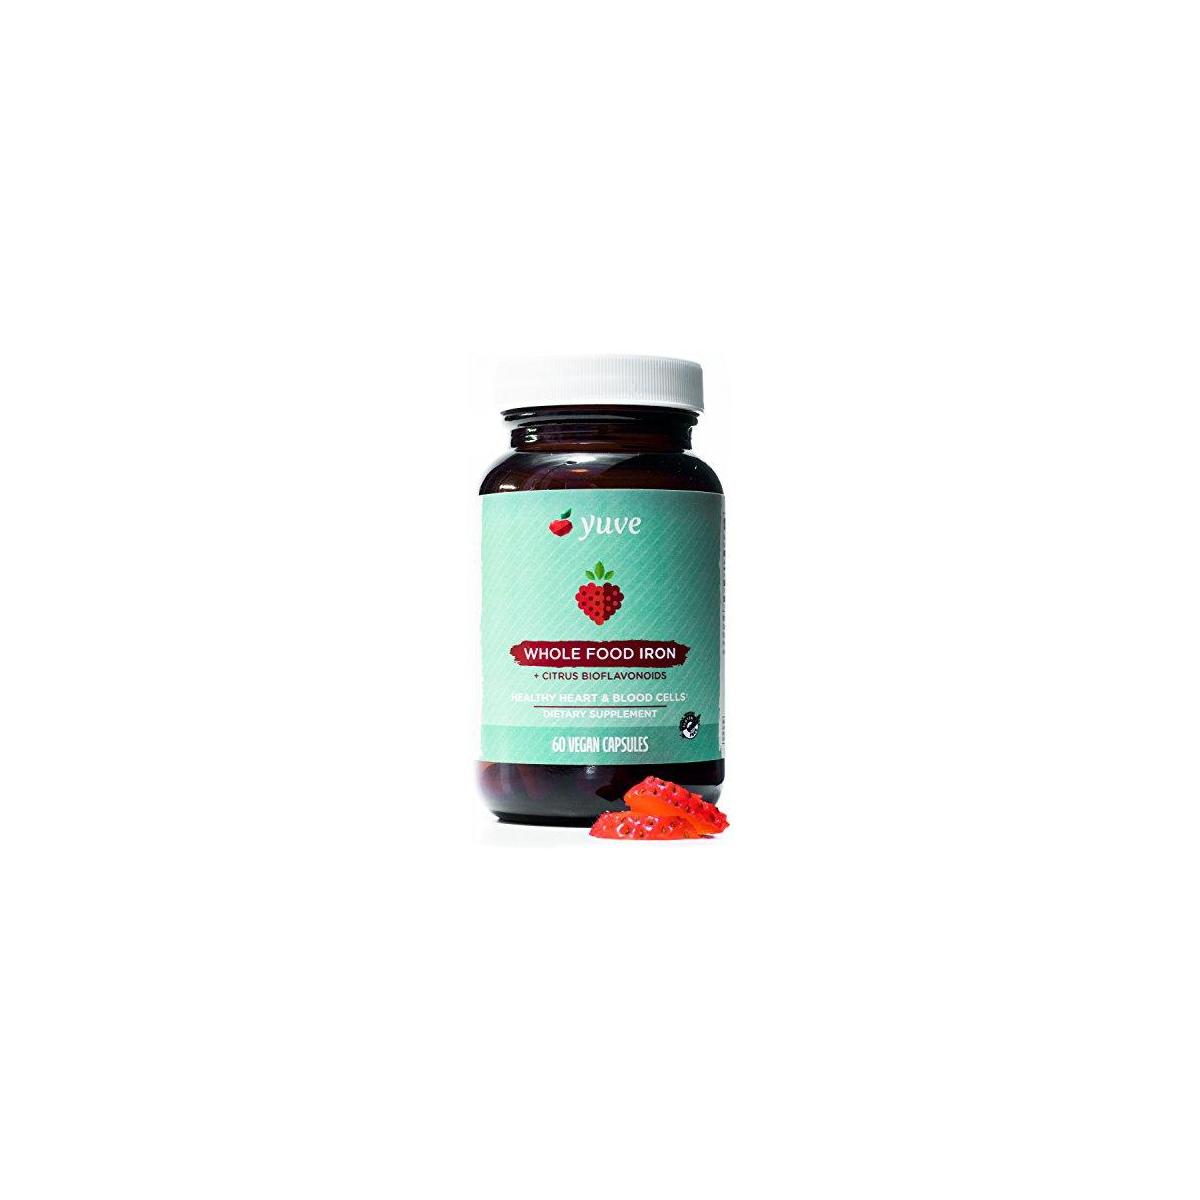 Yuve Whole Food Chelated Iron 18 mg Supplement - Formulated for Maximum Absorbption - Supports Healthy Heart & Blood Cells - Boosts Energy & Cognitive Functions - Vegan, Non-GMO, Gluten-Free - 60 Caps